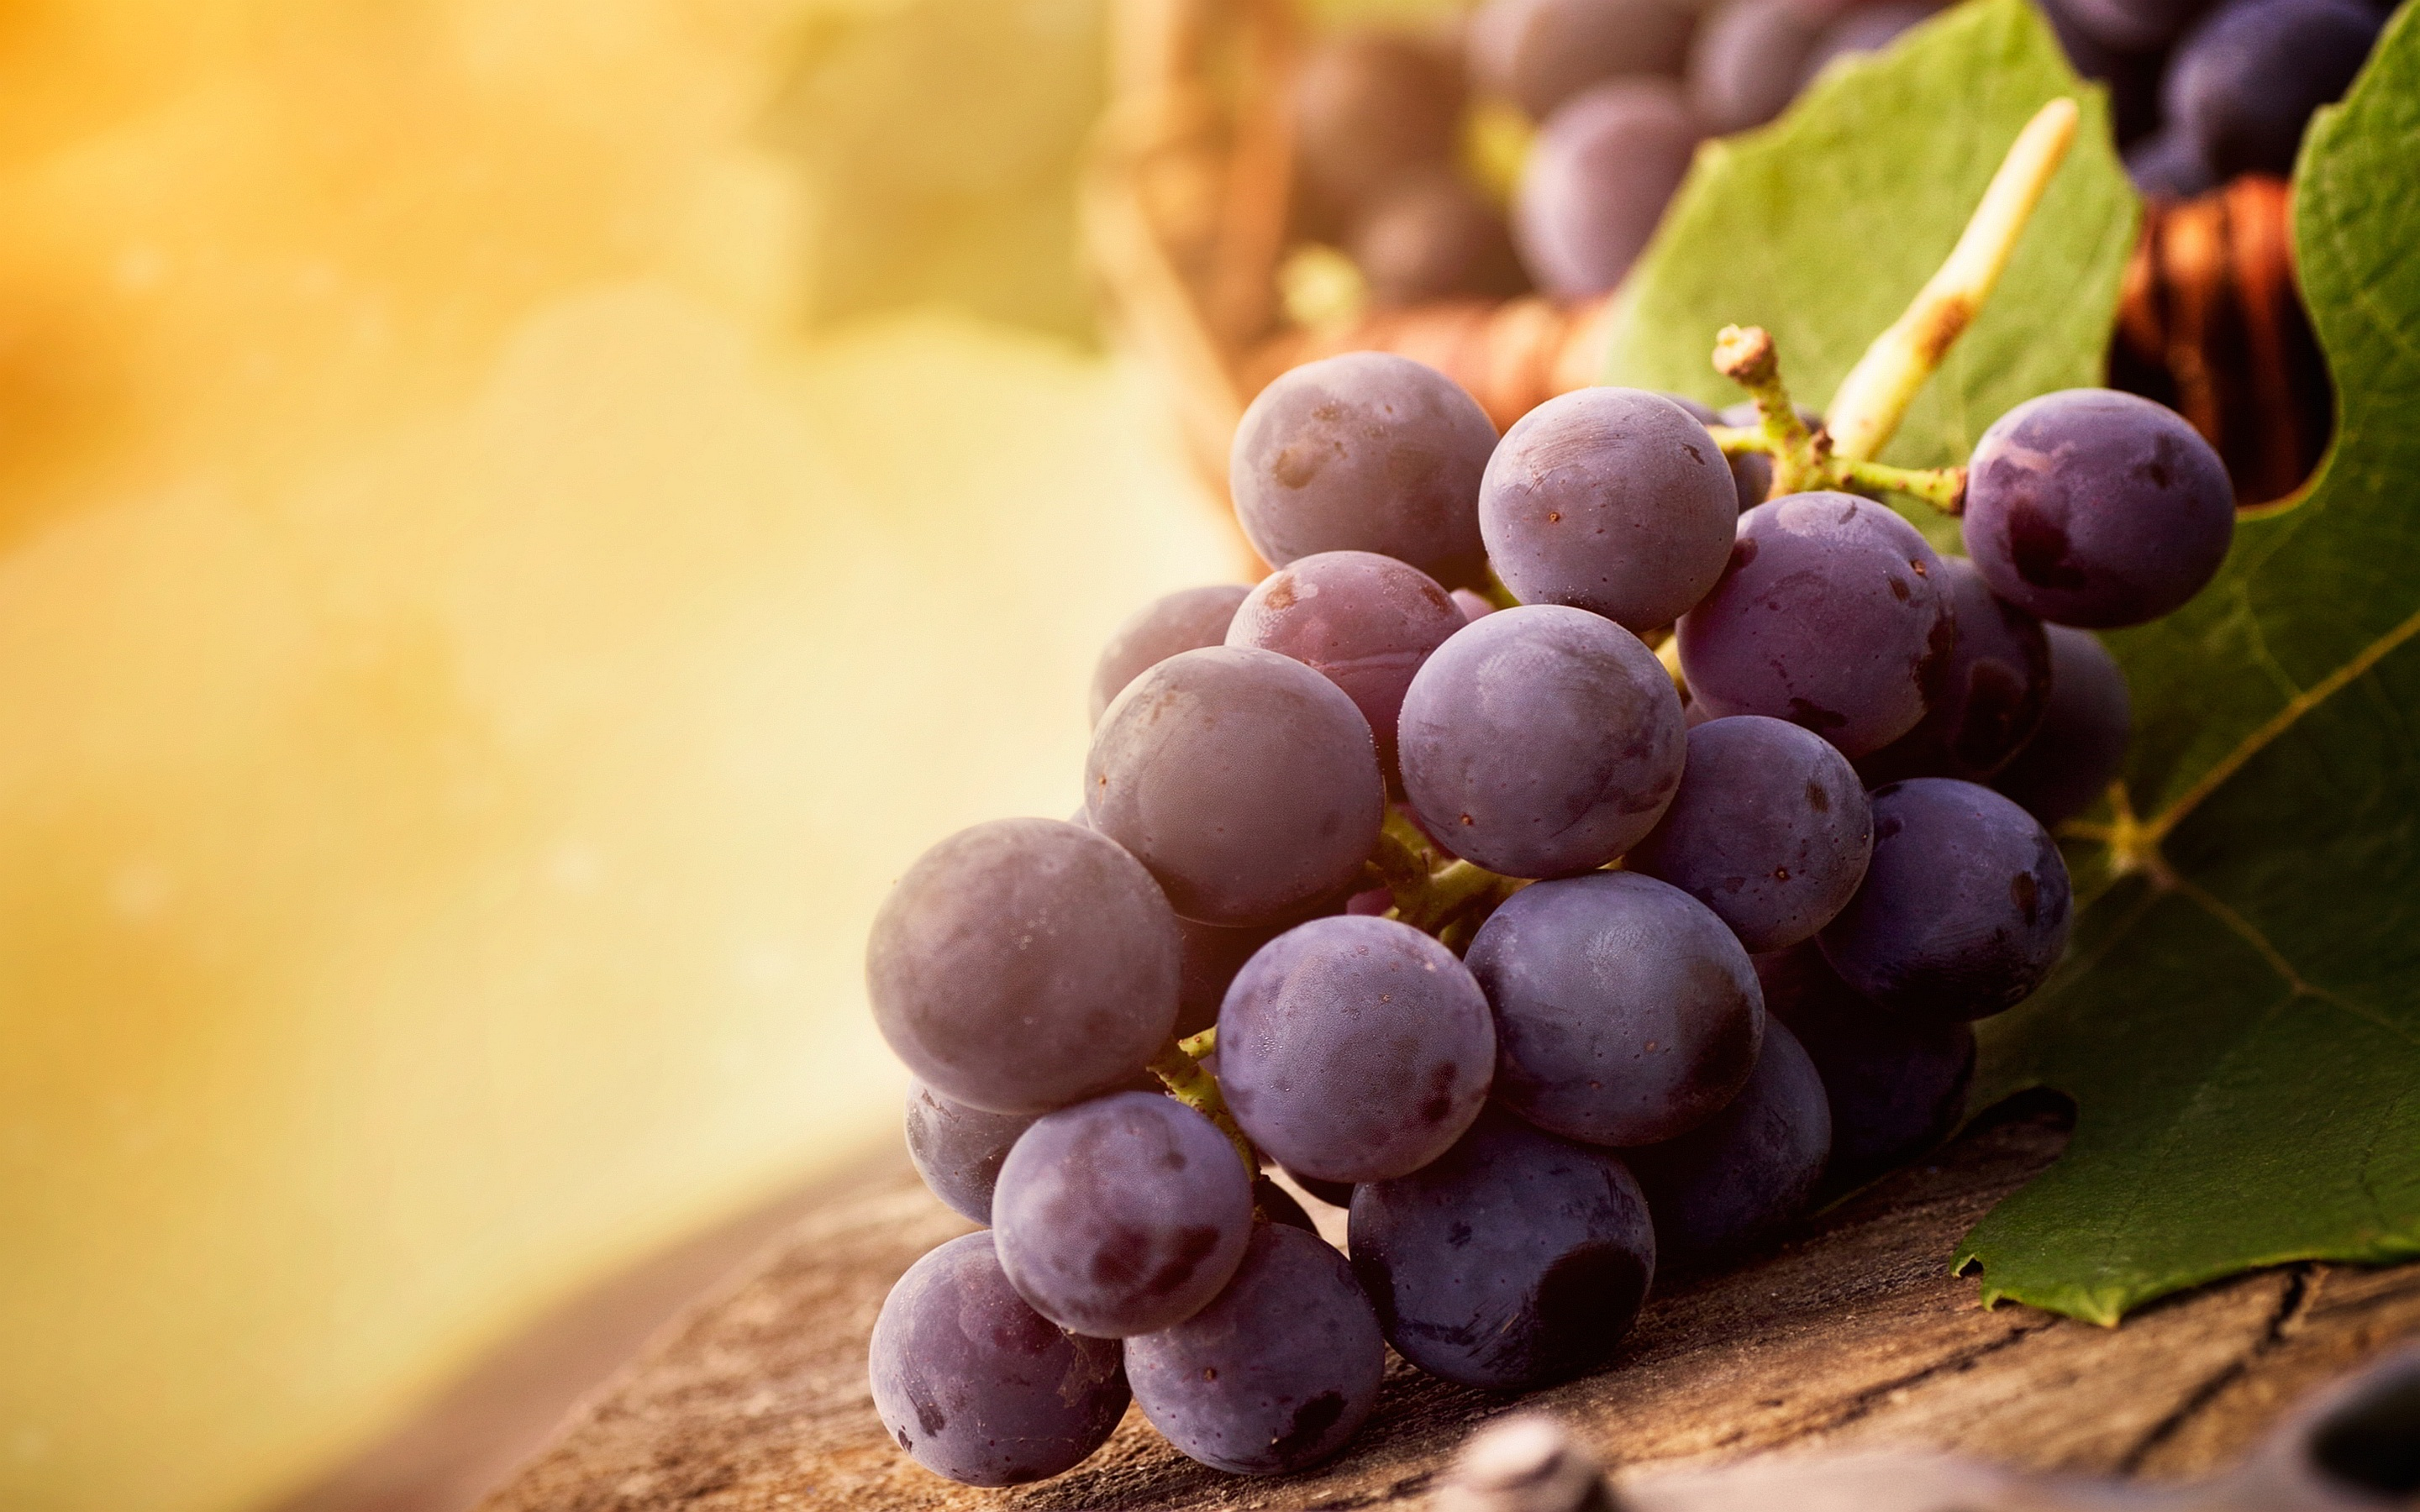 Fruit Grapes Wallpaper Desktop HD Image